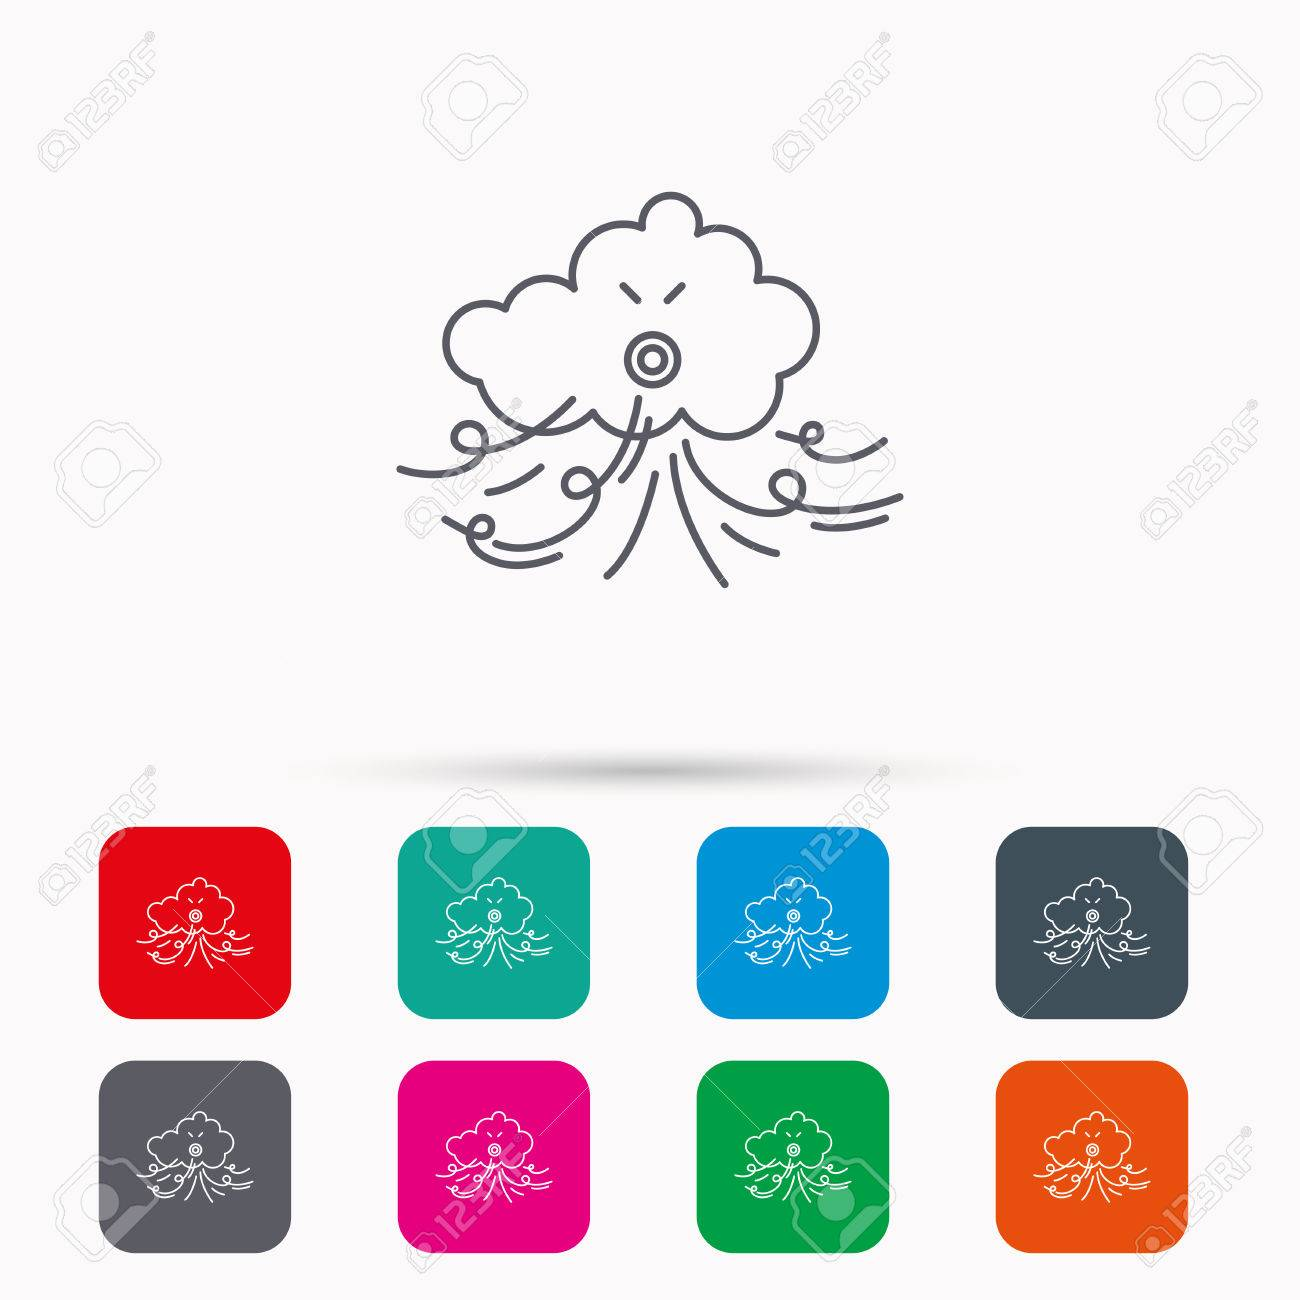 Wind icon cloud with storm sign strong wind or tempest symbol strong wind or tempest symbol linear icons biocorpaavc